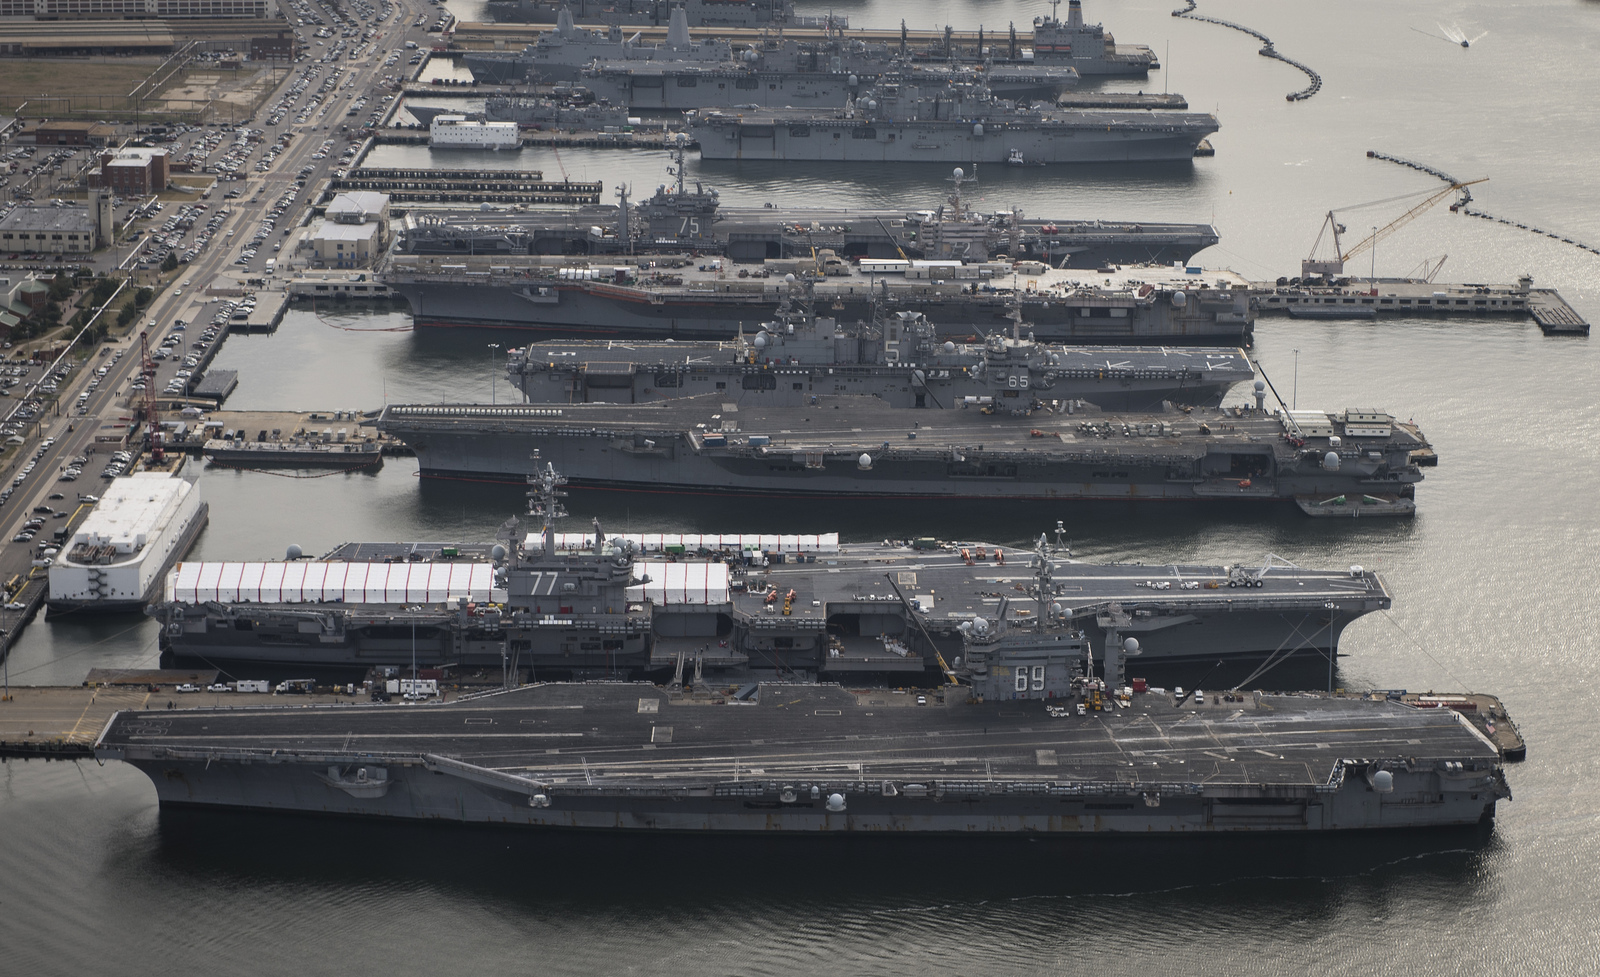 aircraft_carriers_large.jpg